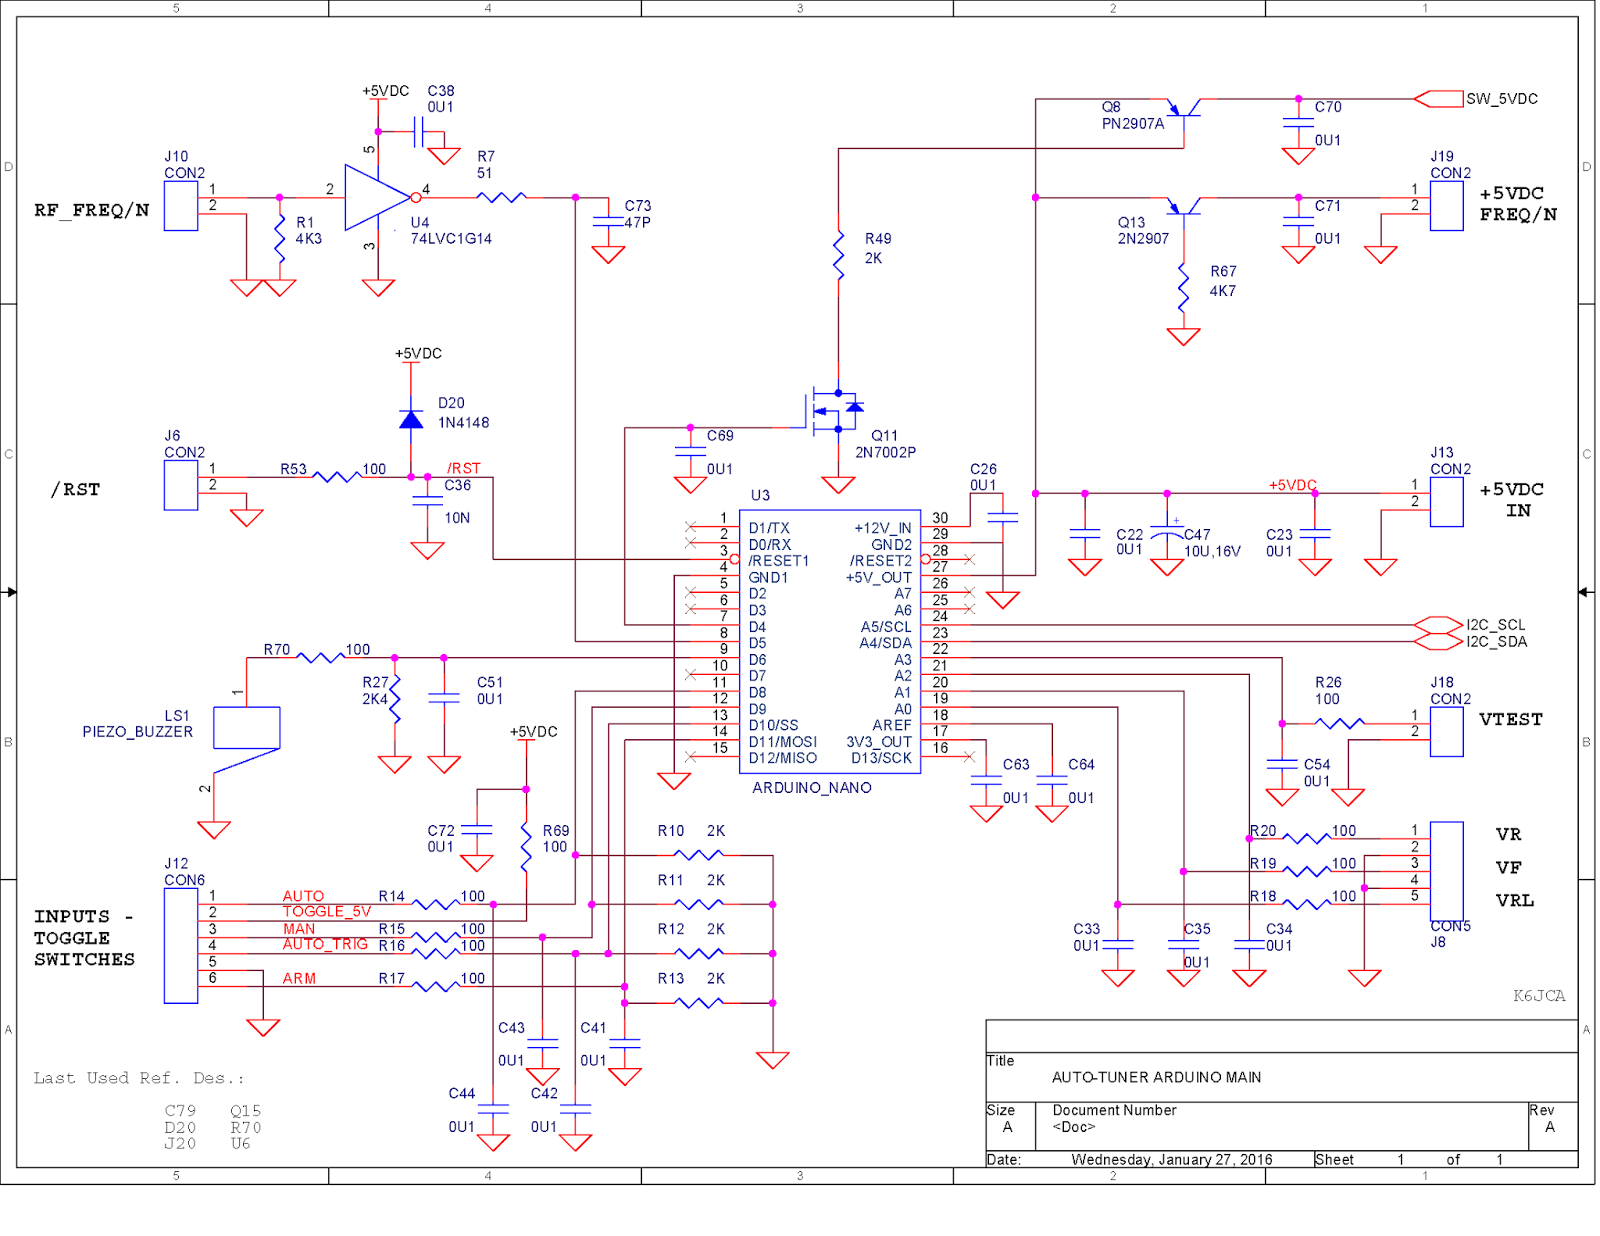 Ohm Meter Schematic further Pv System Schematic together with Html as well Index together with Notes On Directional Couplers For Hf. on directional coupler schematic